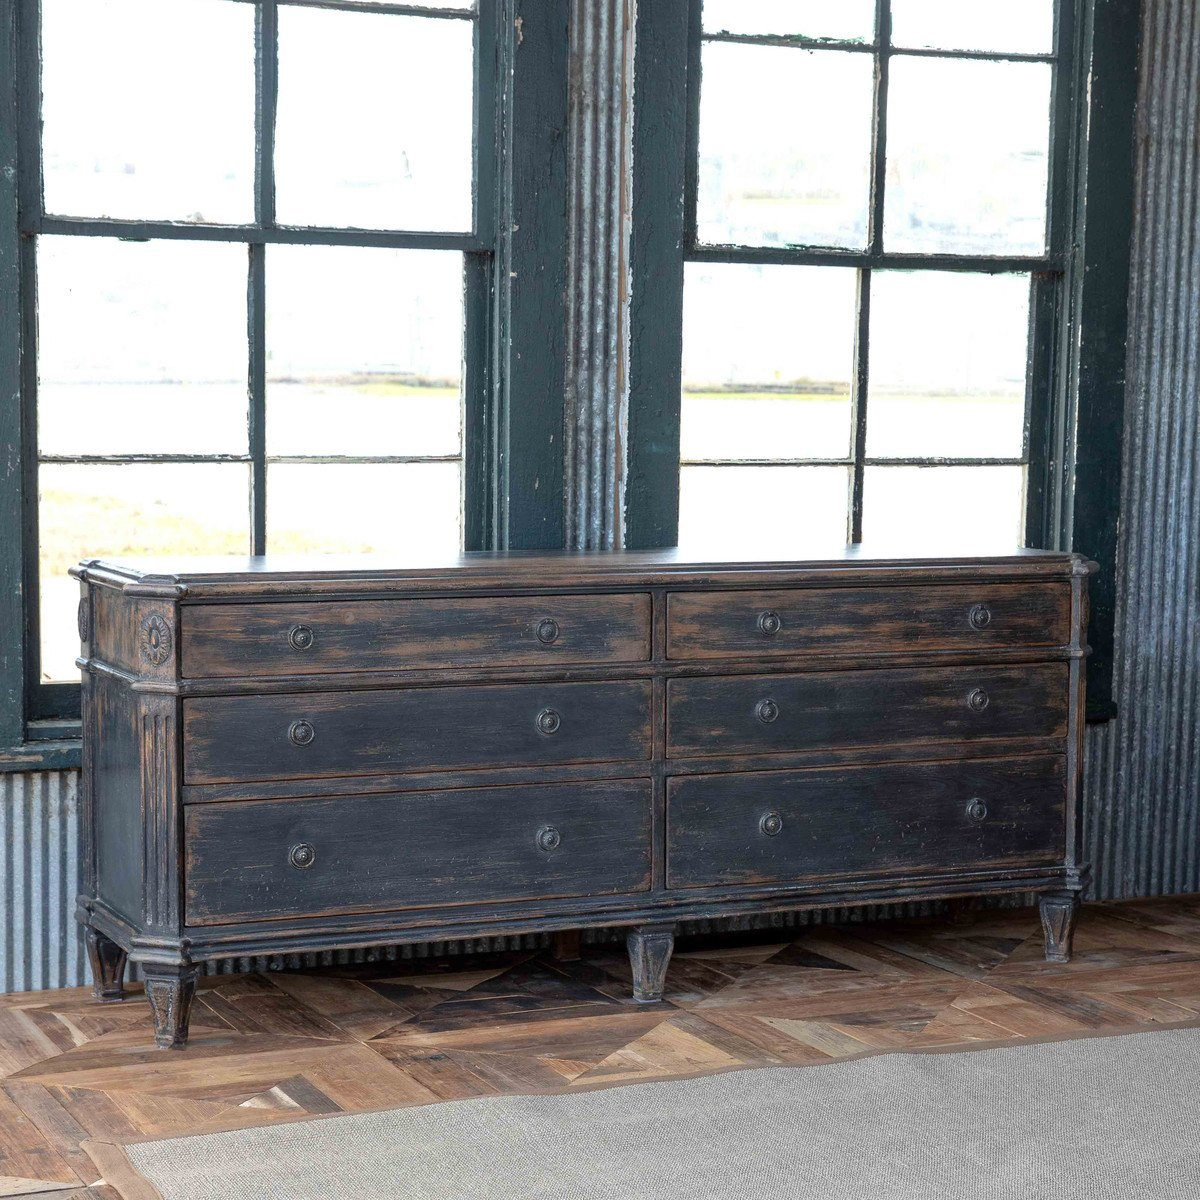 Painted Black Credenza